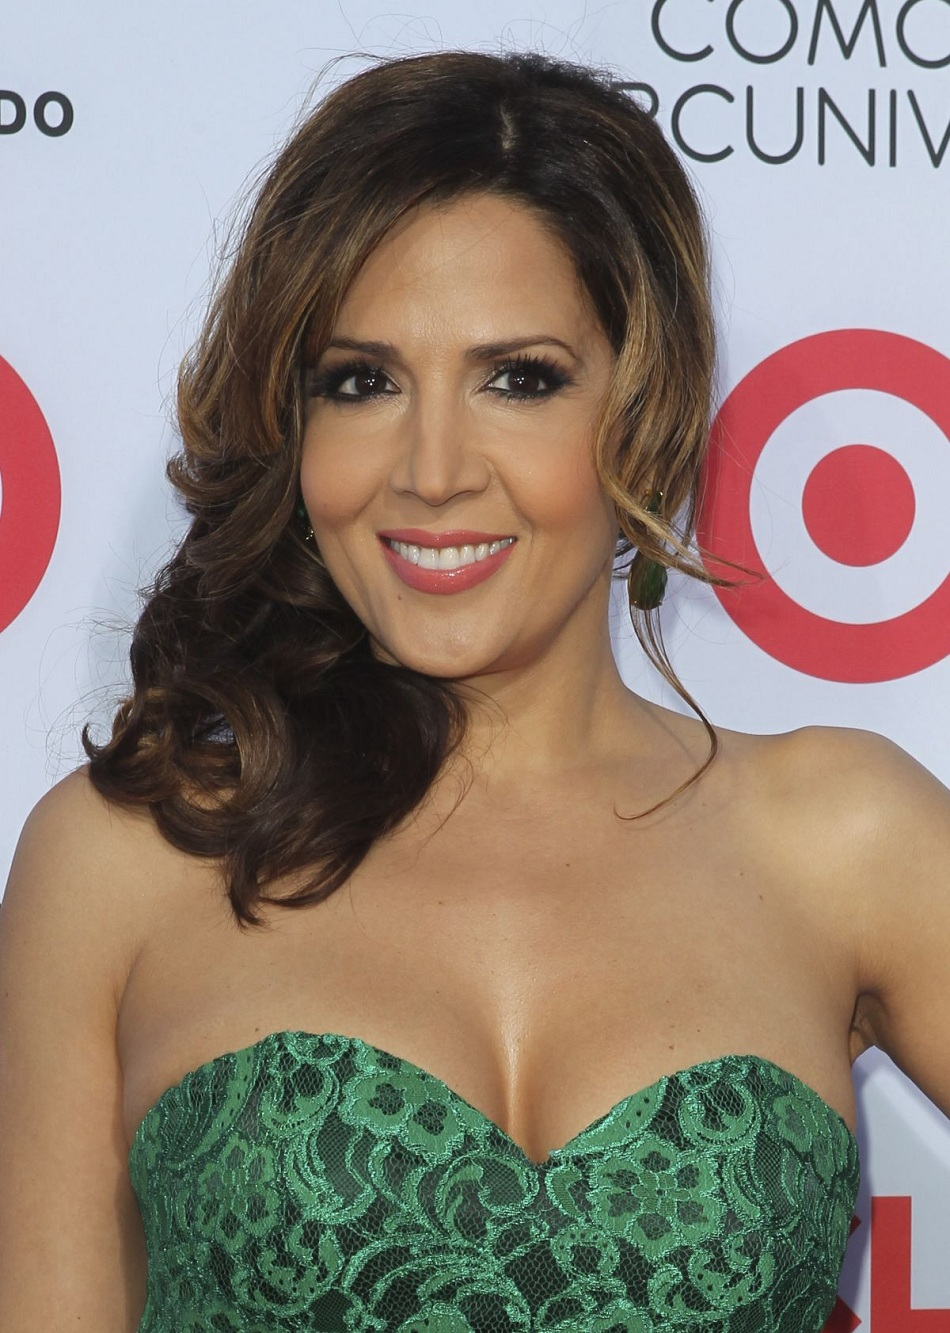 maria canals barrera hot boobs and ass